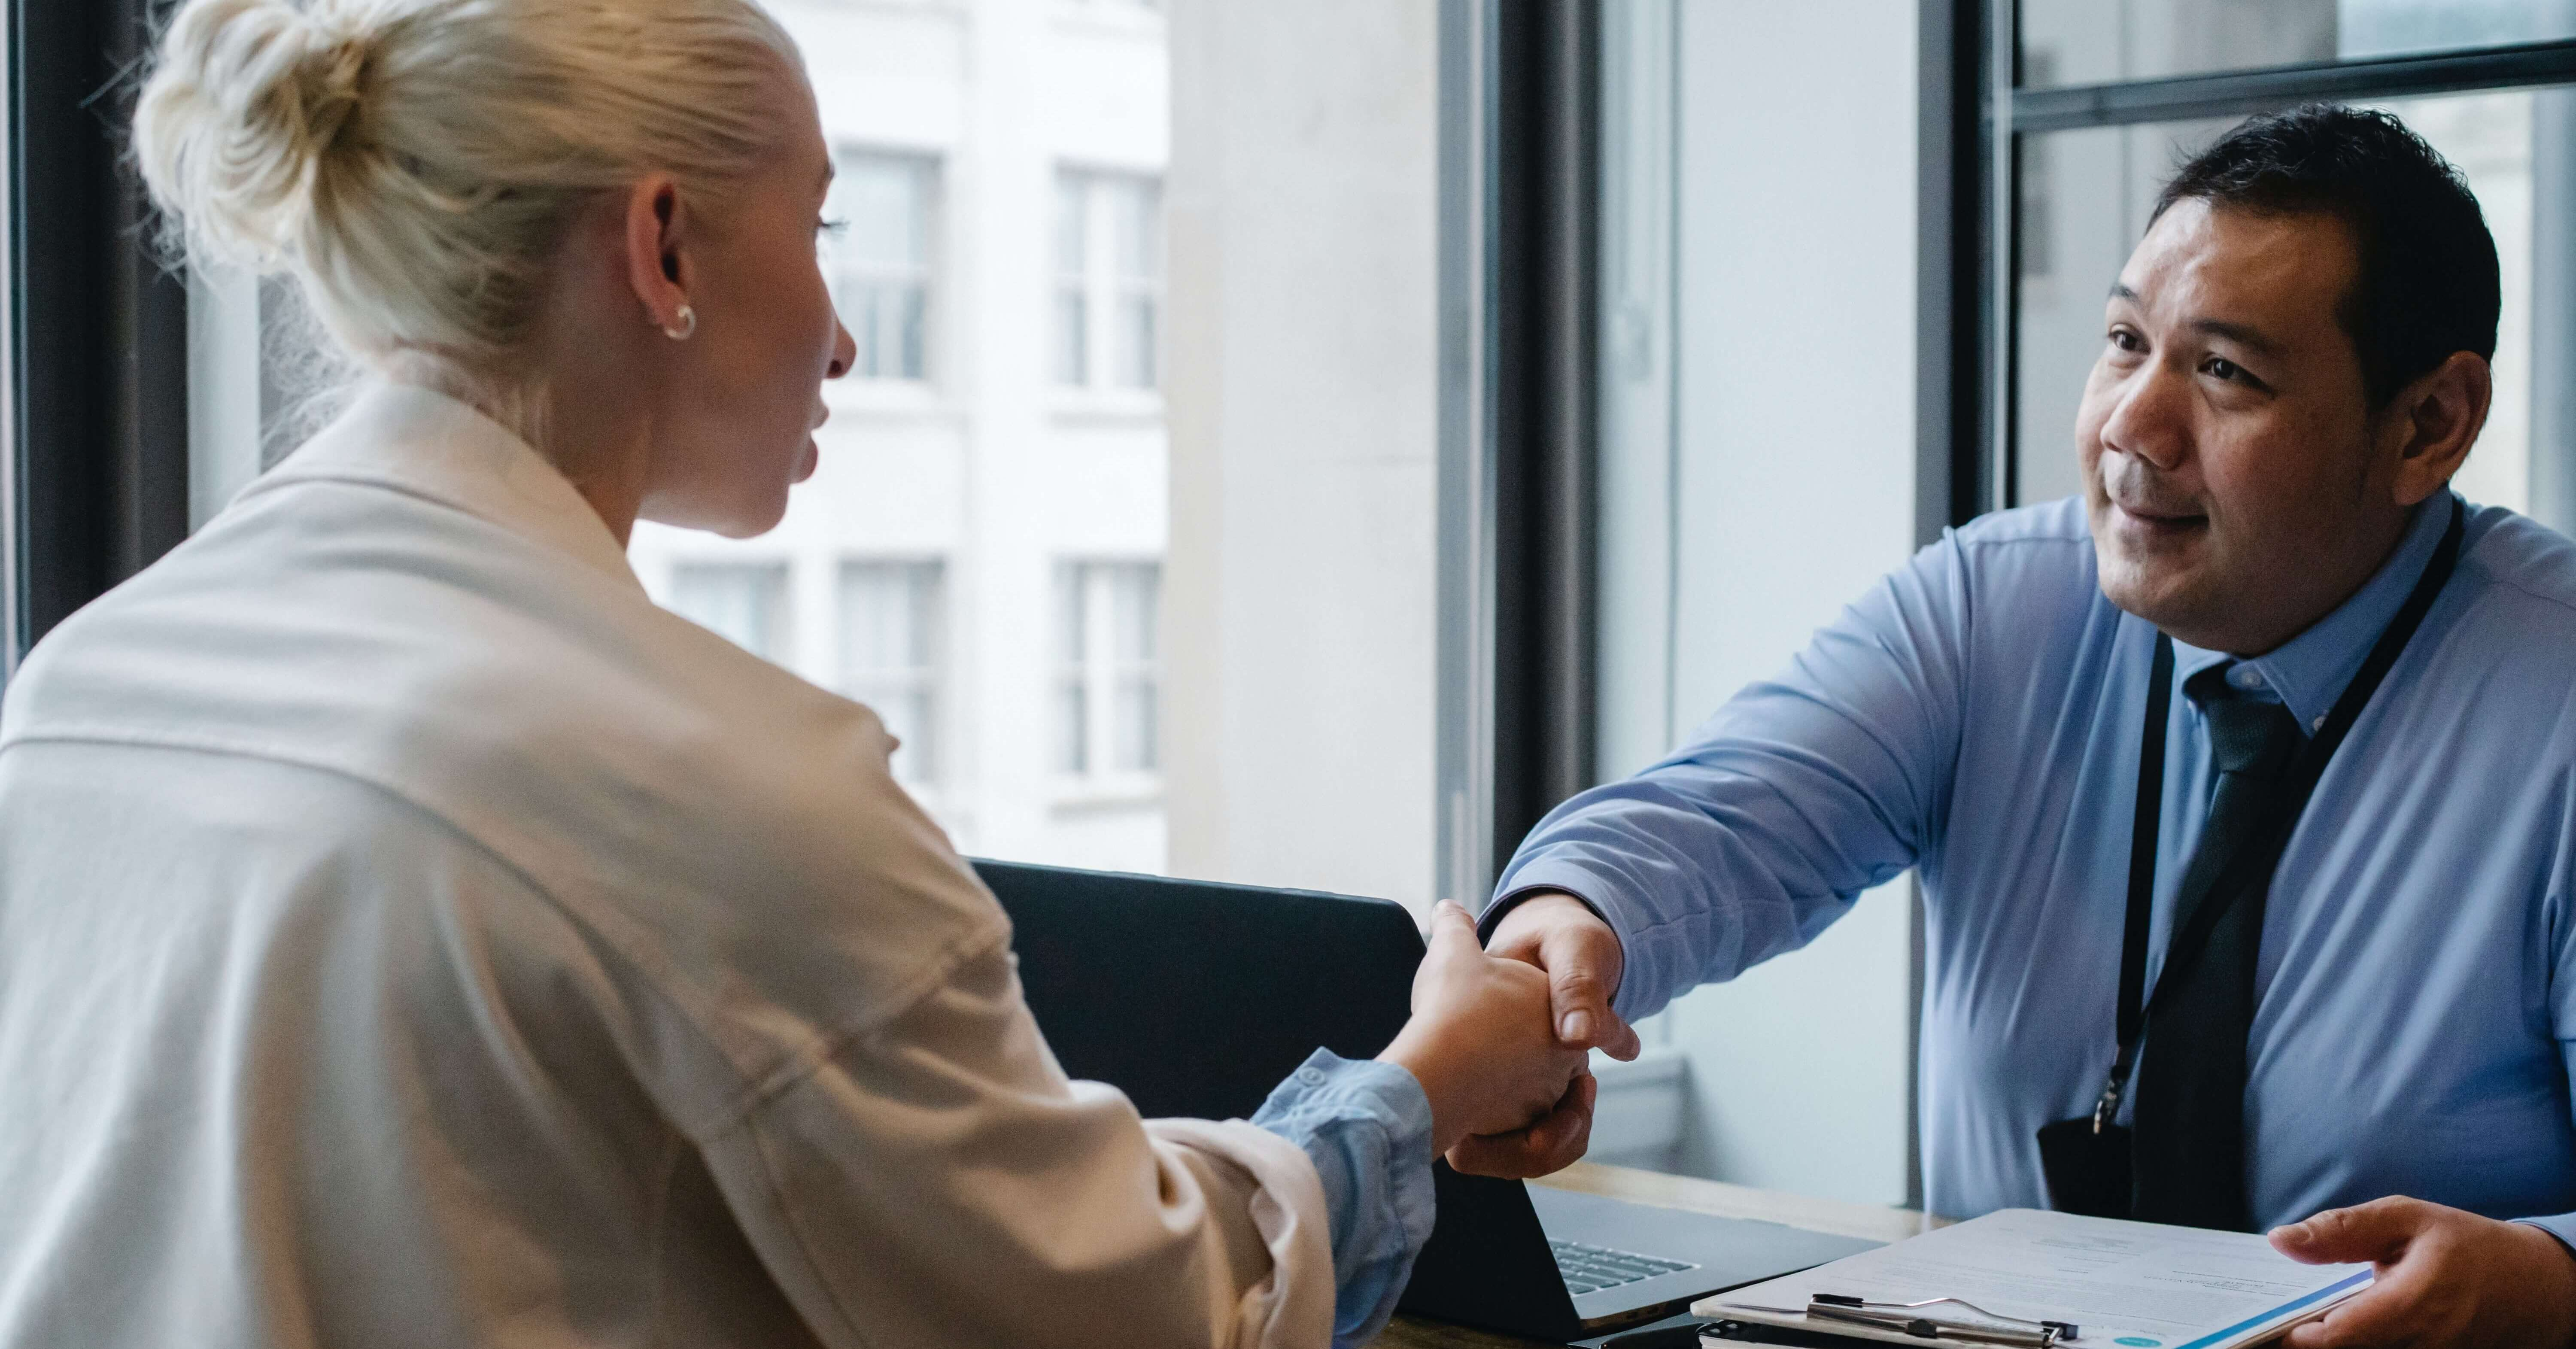 how to find and hire great employees